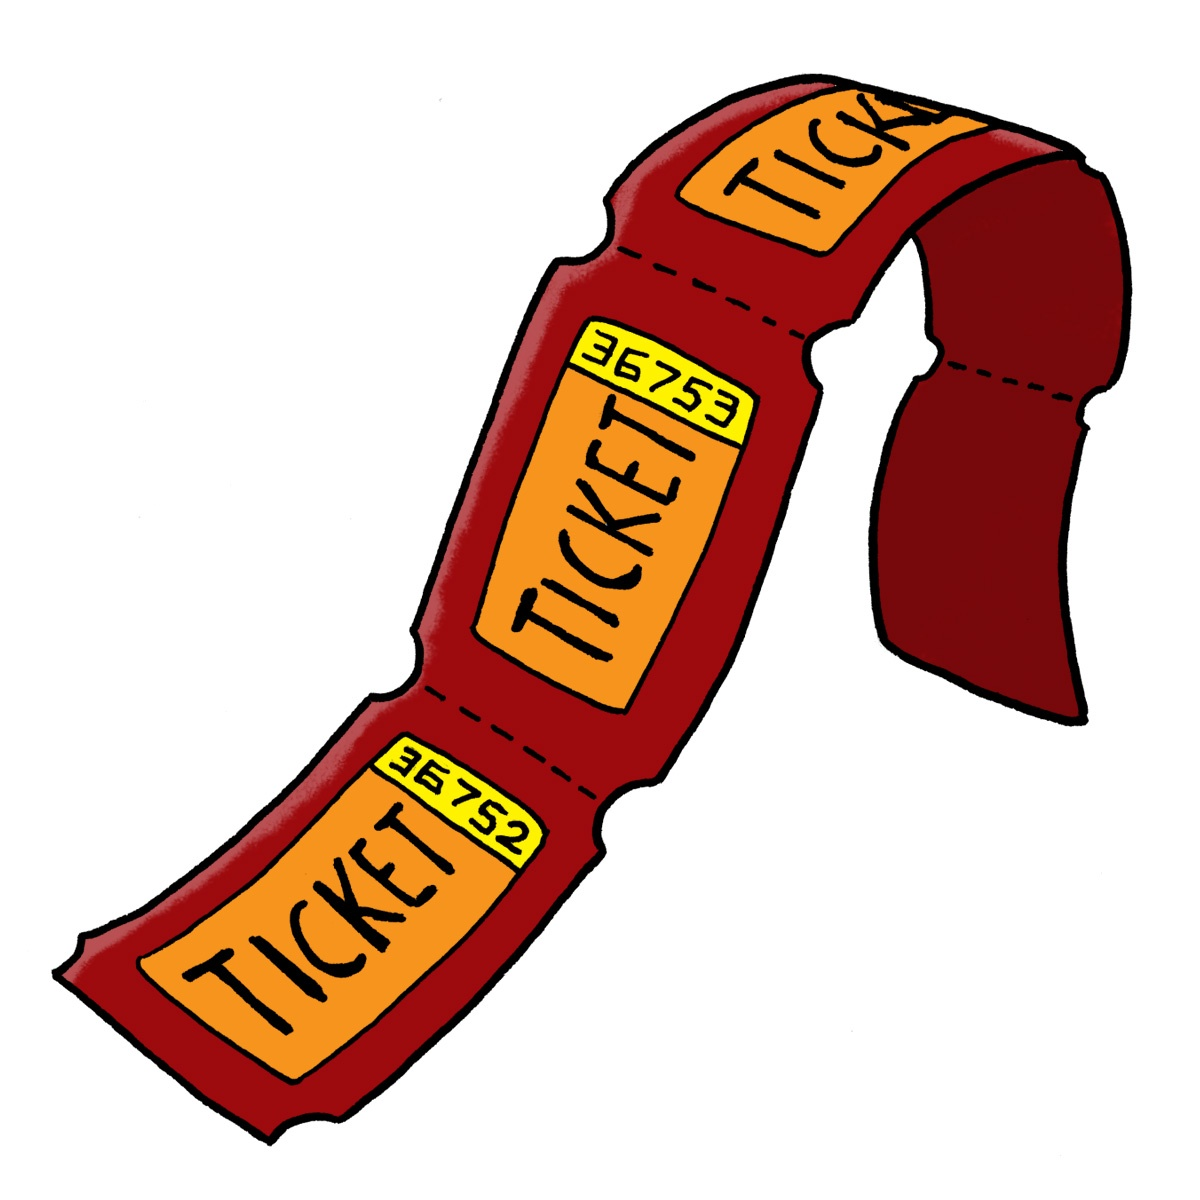 Ticket clip art template free clipart images 4 clipartix 2.